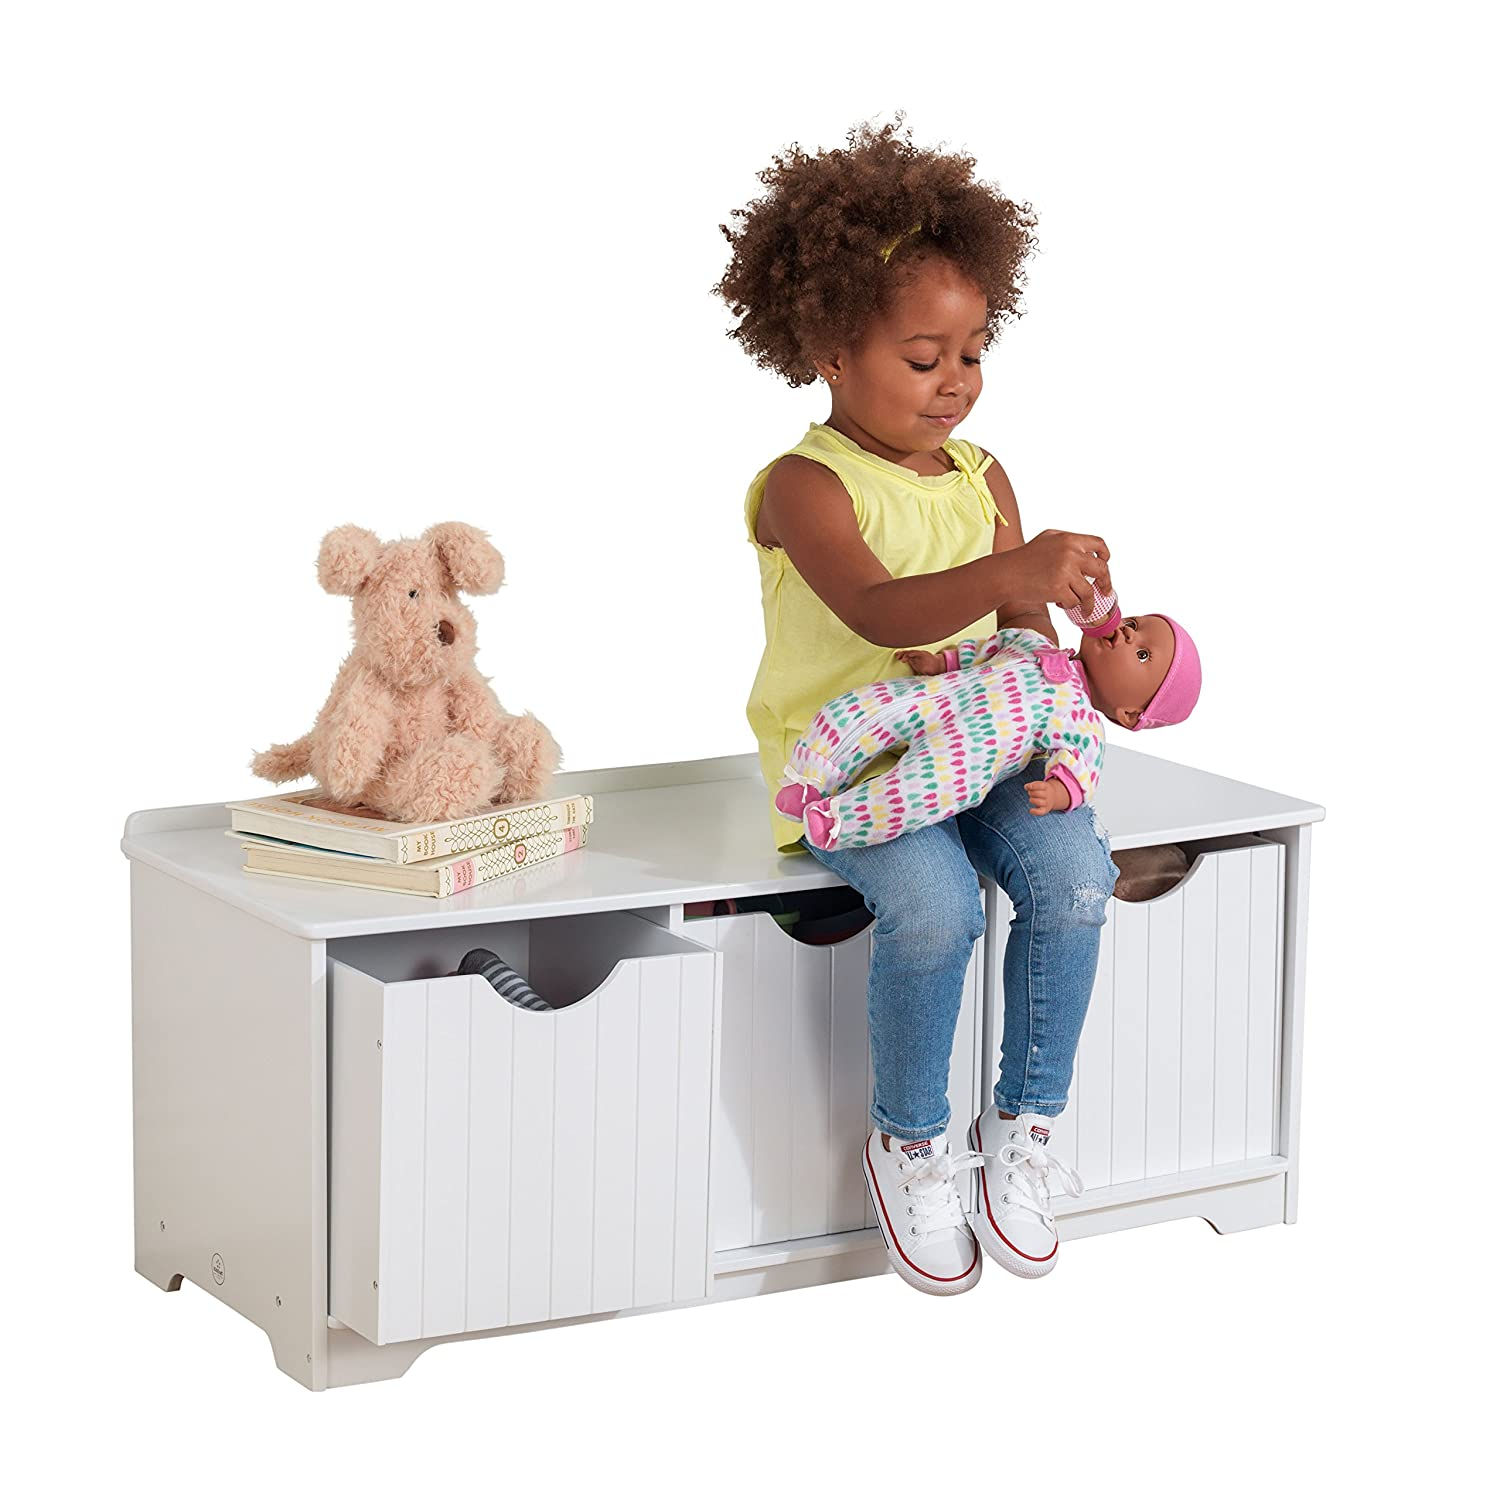 KidKraft Nantucket Storage Bench 14564